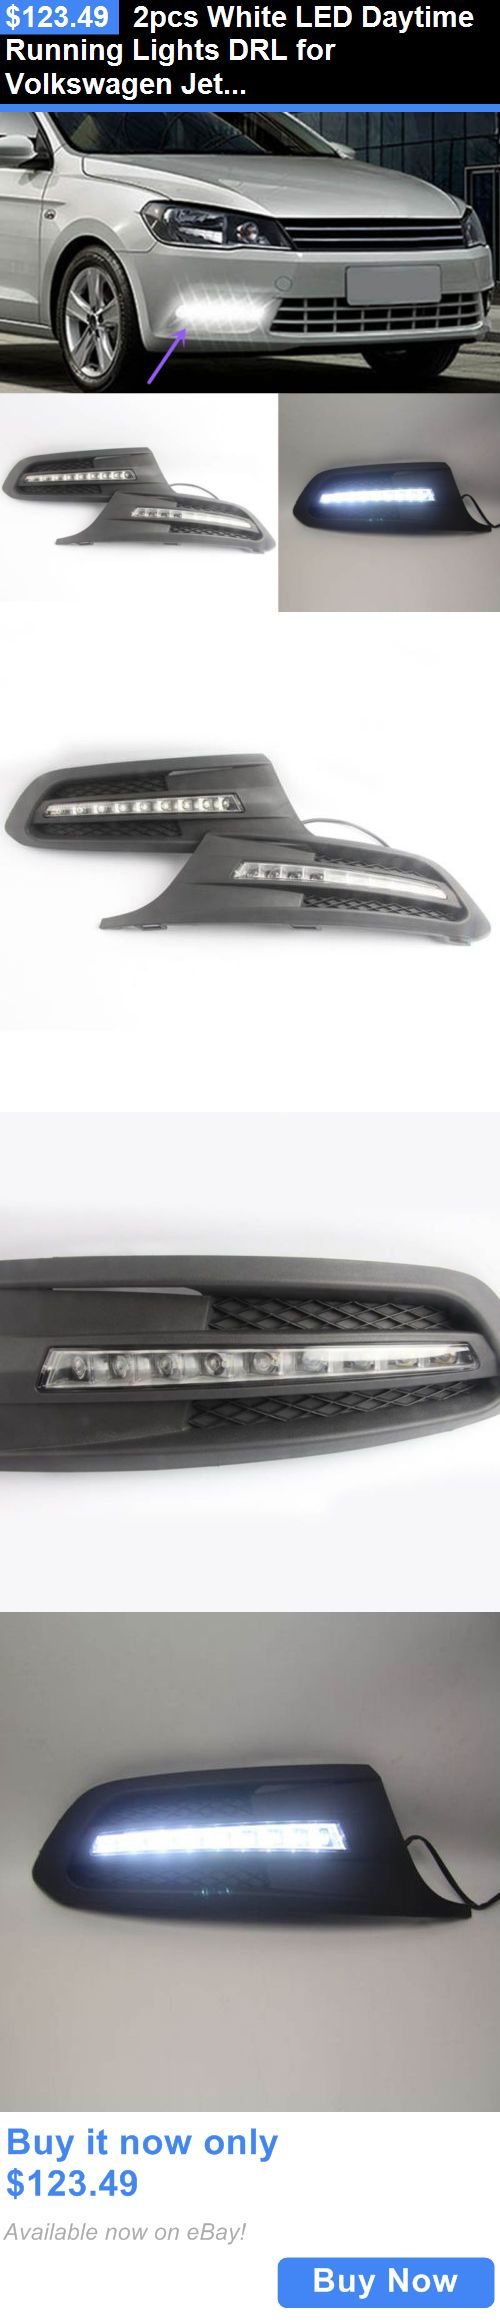 Motors parts and accessories 2pcs white led daytime running lights drl for volkswagen jetta 2011